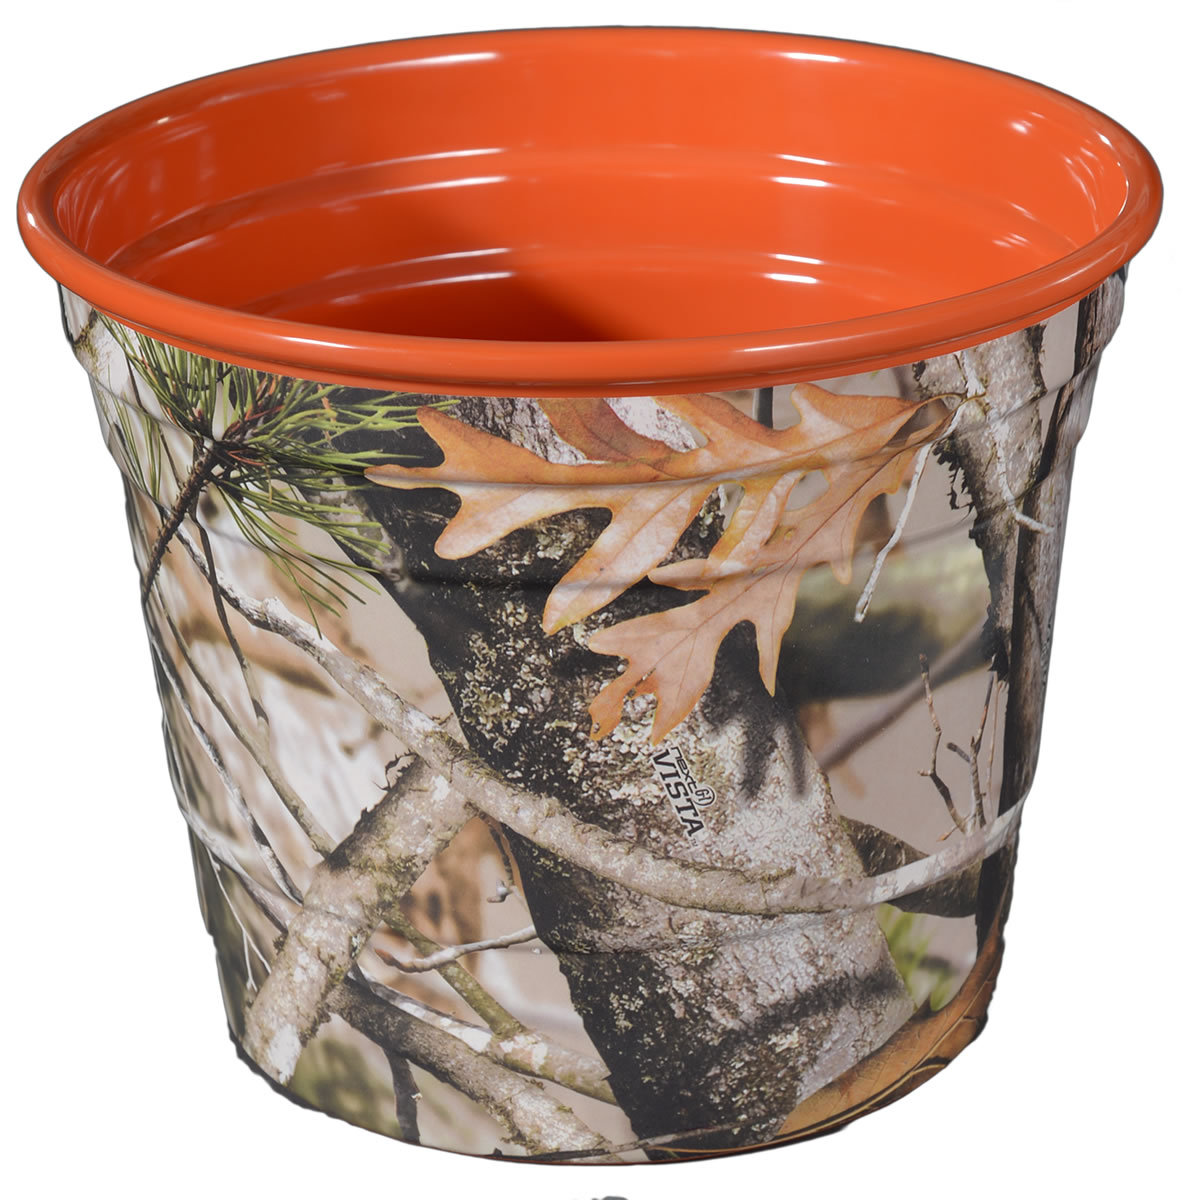 NEXT Camo Party Bucket with Orange Interior